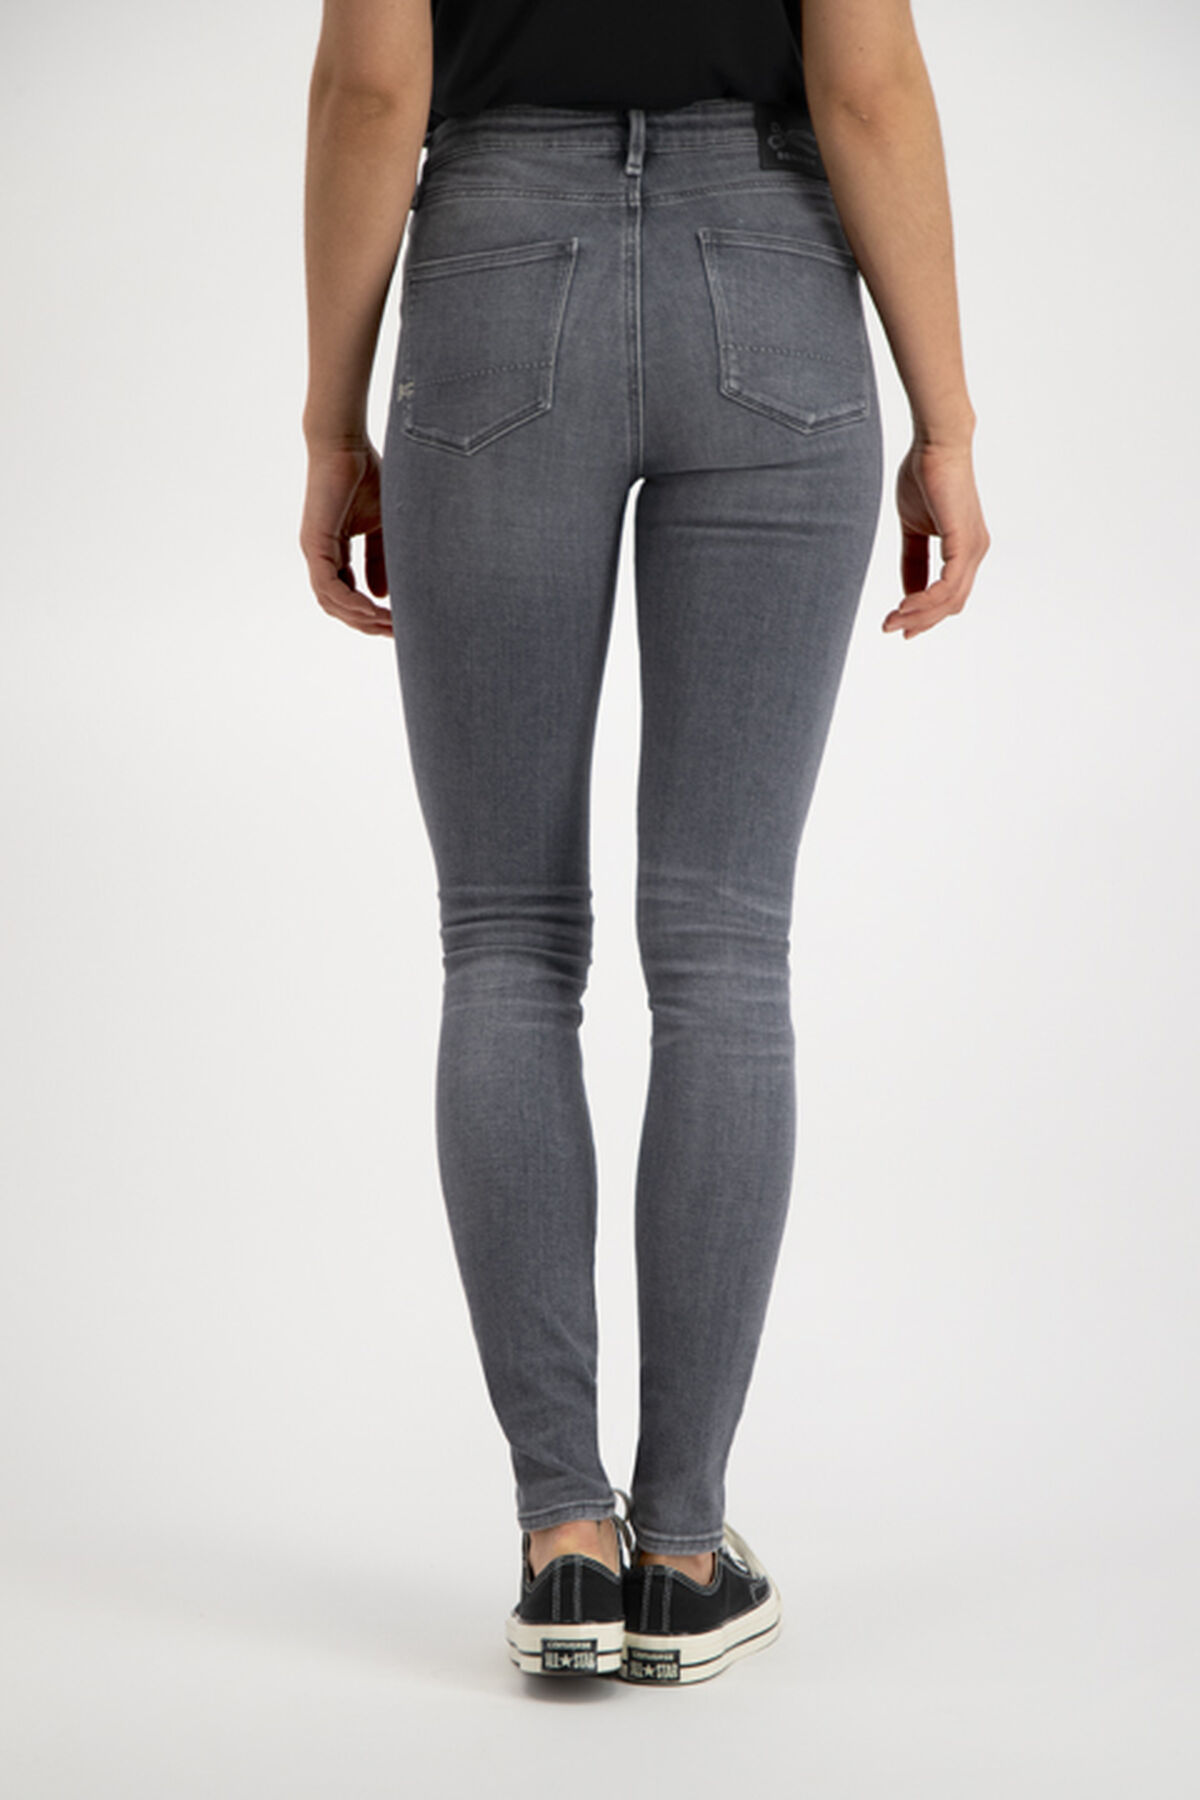 Needle High Skinny Fit Jeans - LHGF